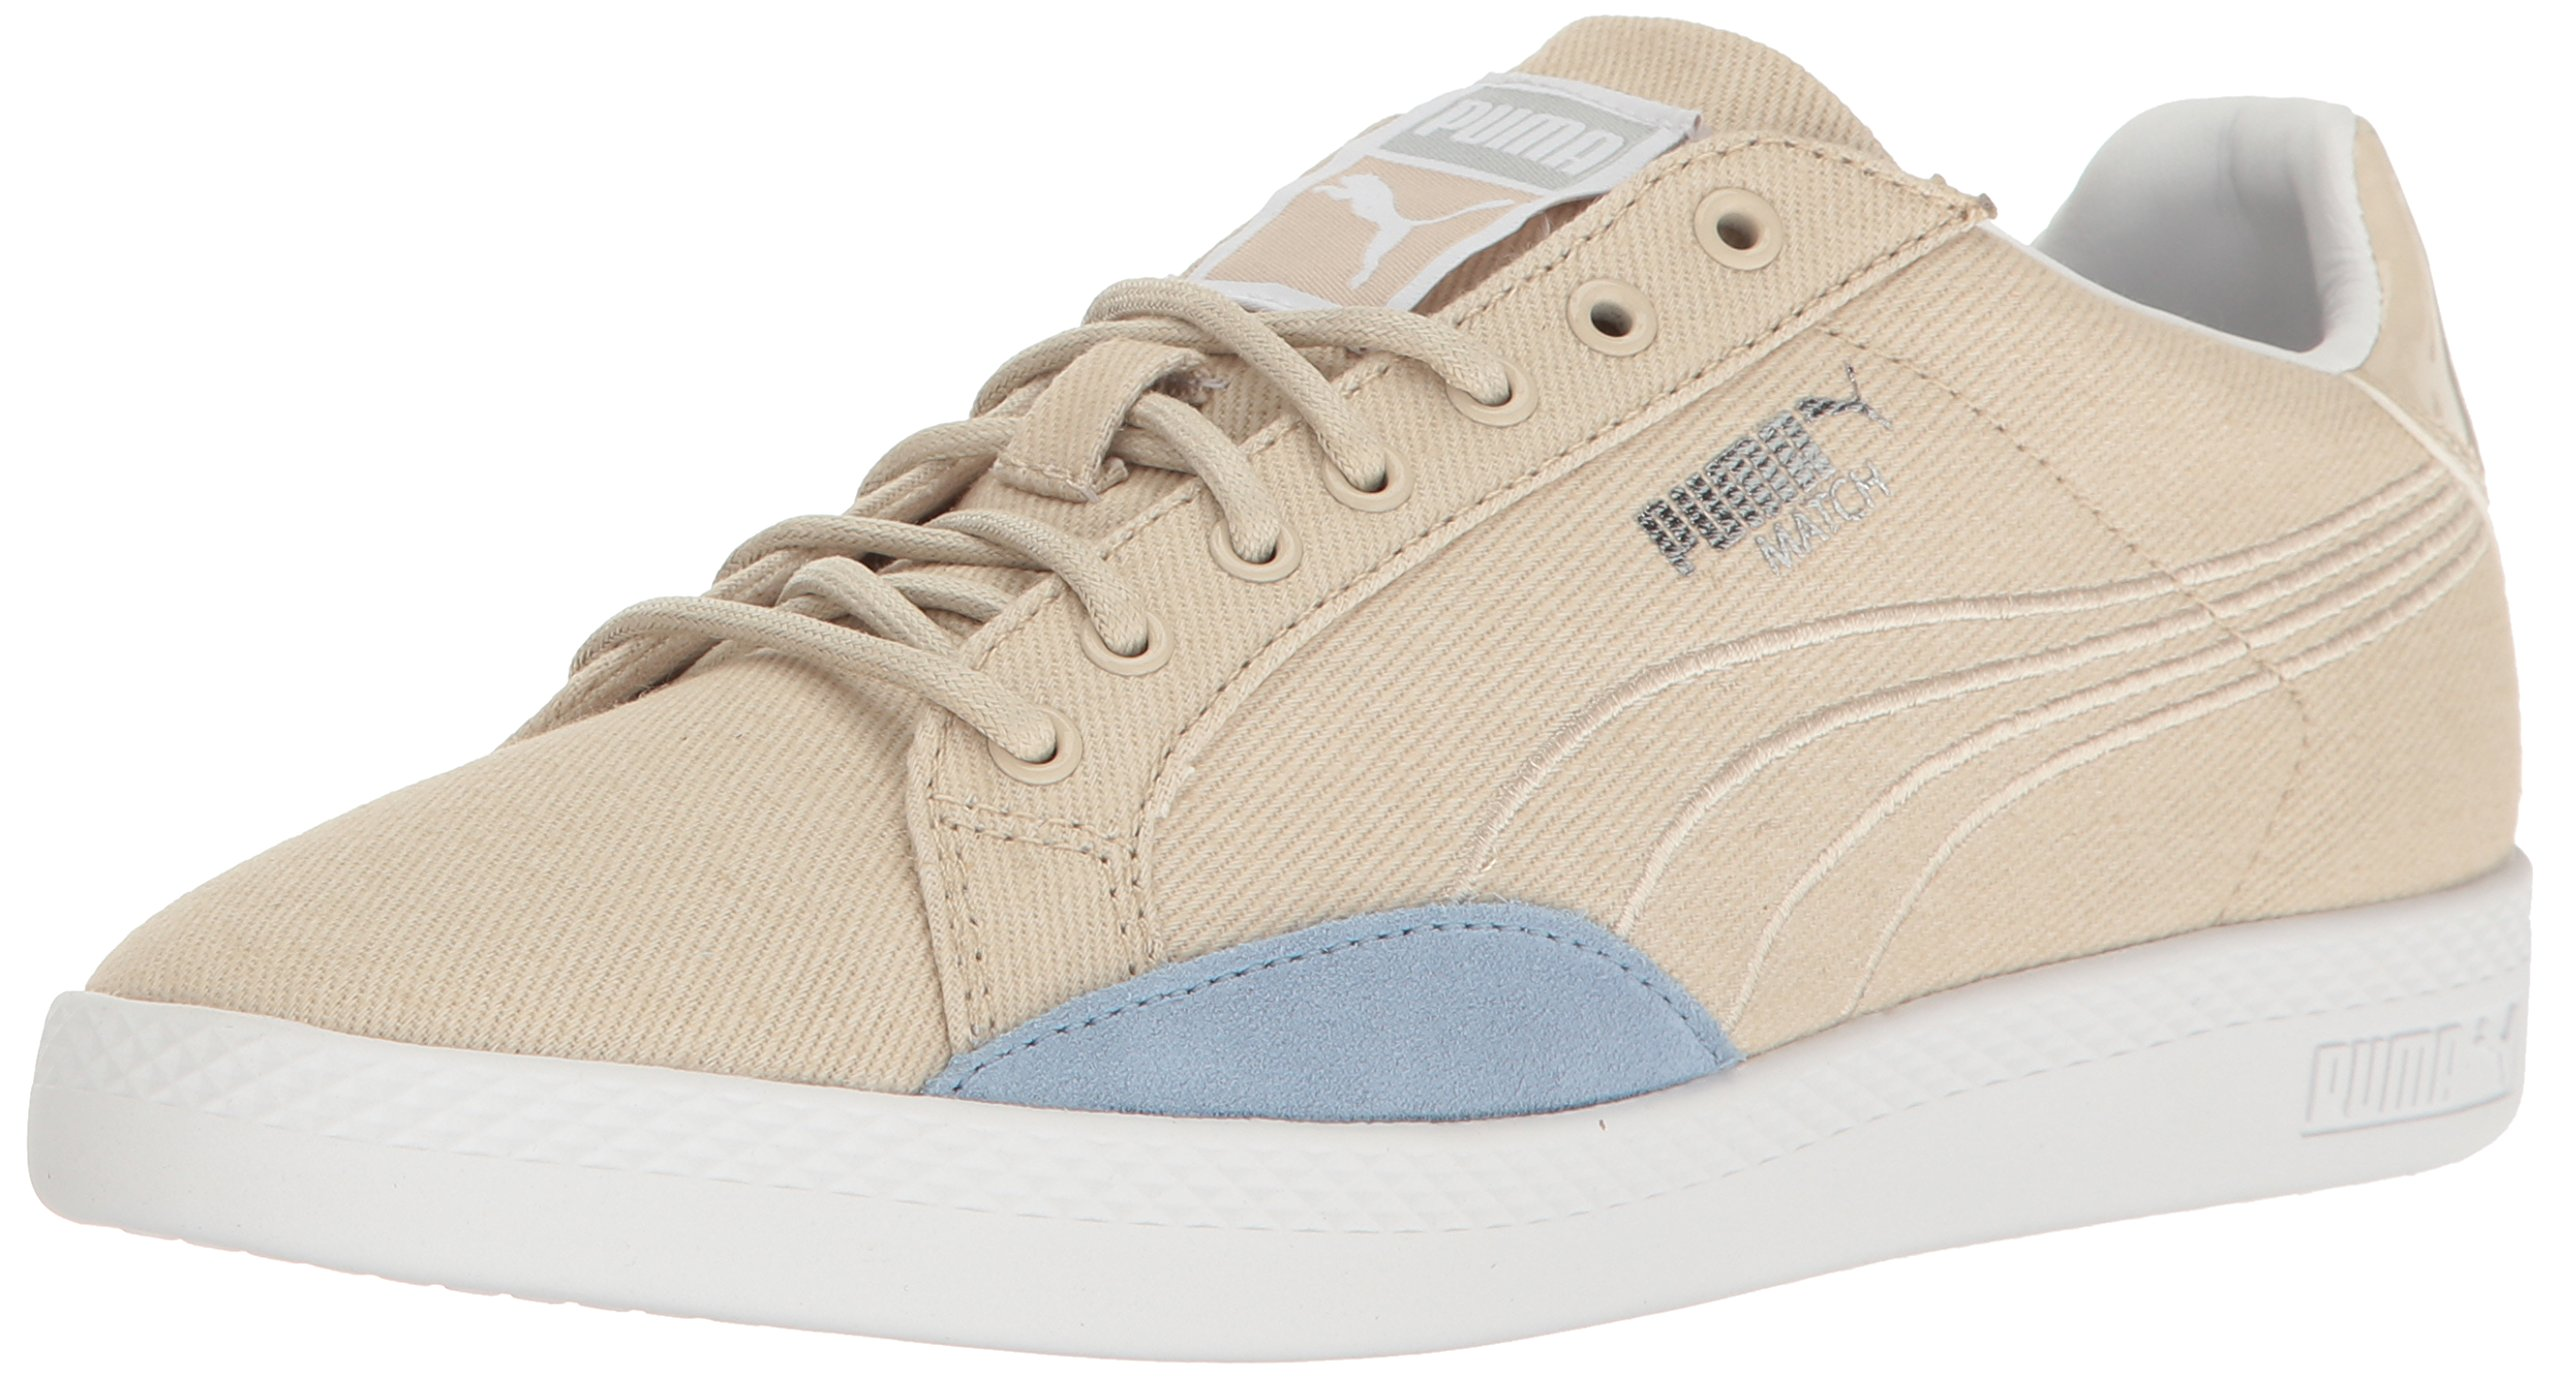 PUMA Women's Match Denim WN's Field Hockey Shoe, Oatmeal, 9 M US